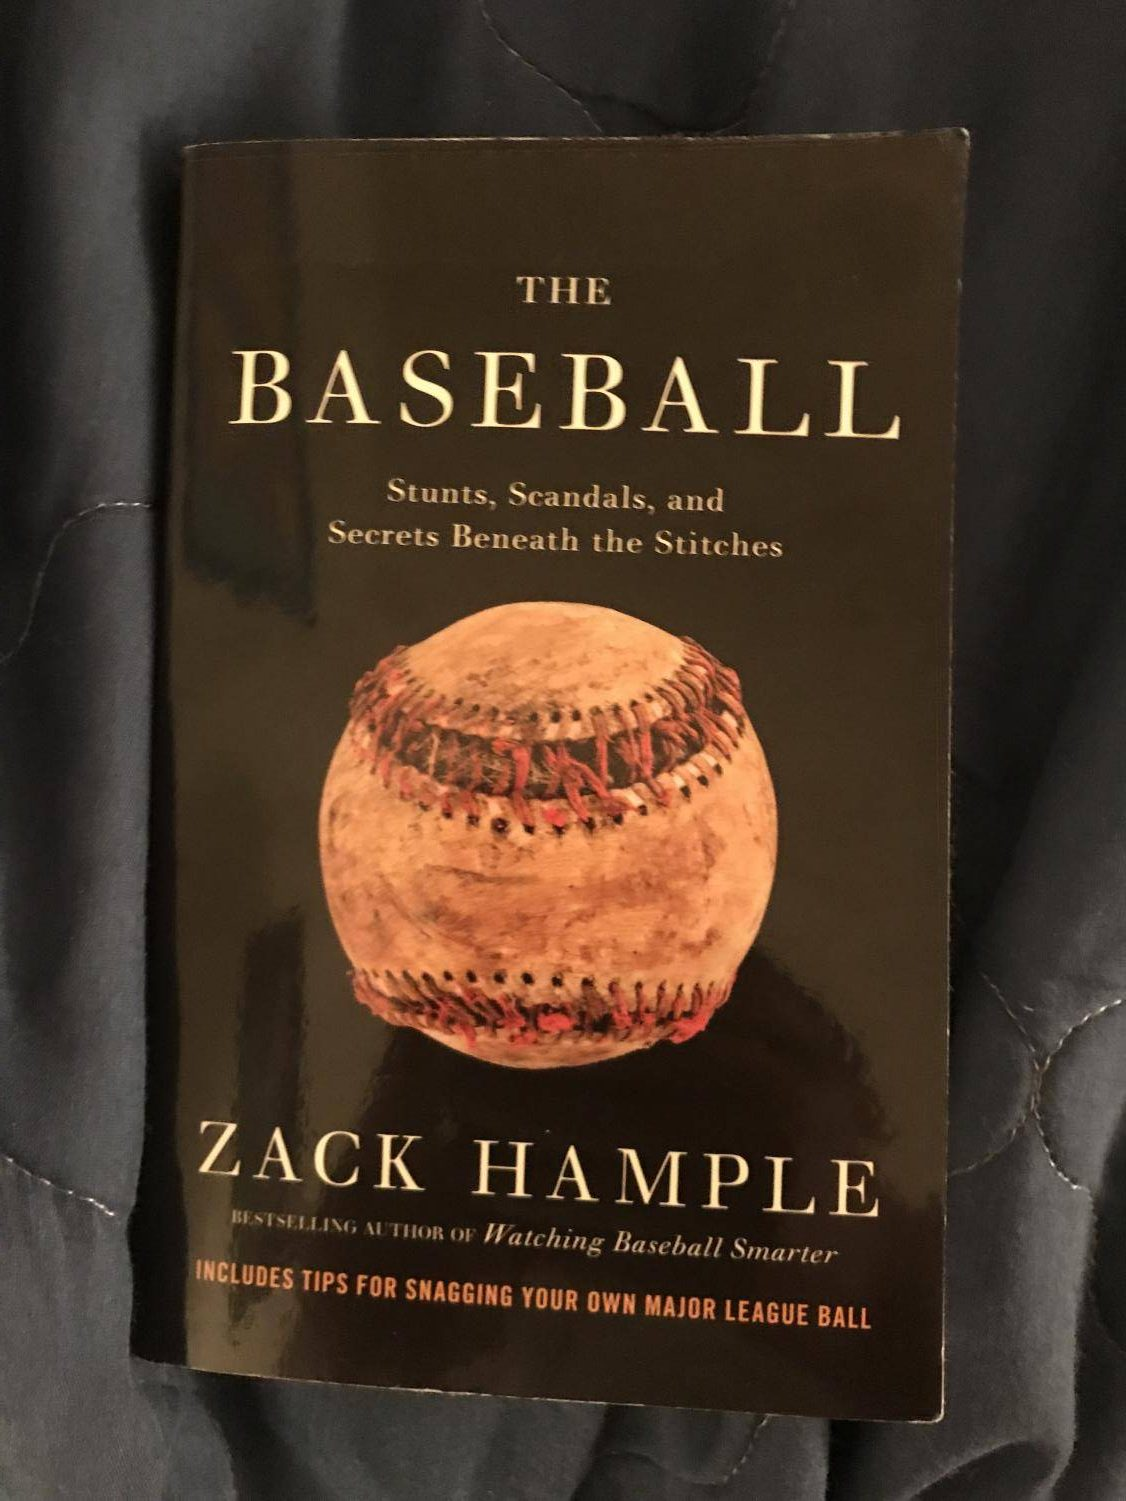 Because of it's information, anyone can try to catch their own baseball at a Major League Baseball Game like Zack Hample.